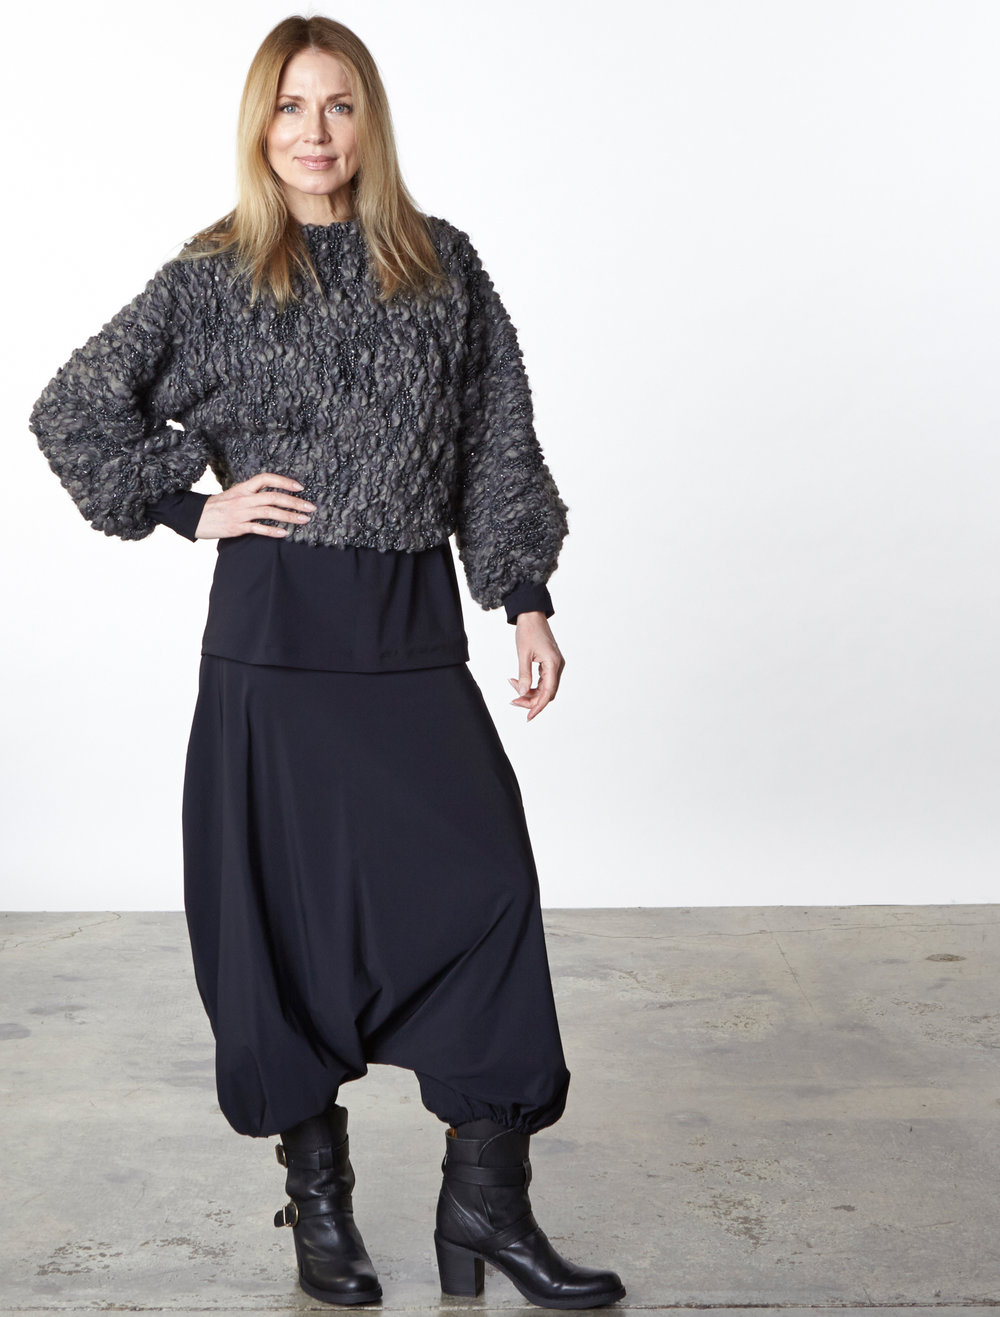 Anna Shirt in Ready for the Faroes, Gabo Tunic, Gaucho Pant in Black Italian Microfiber Jersey